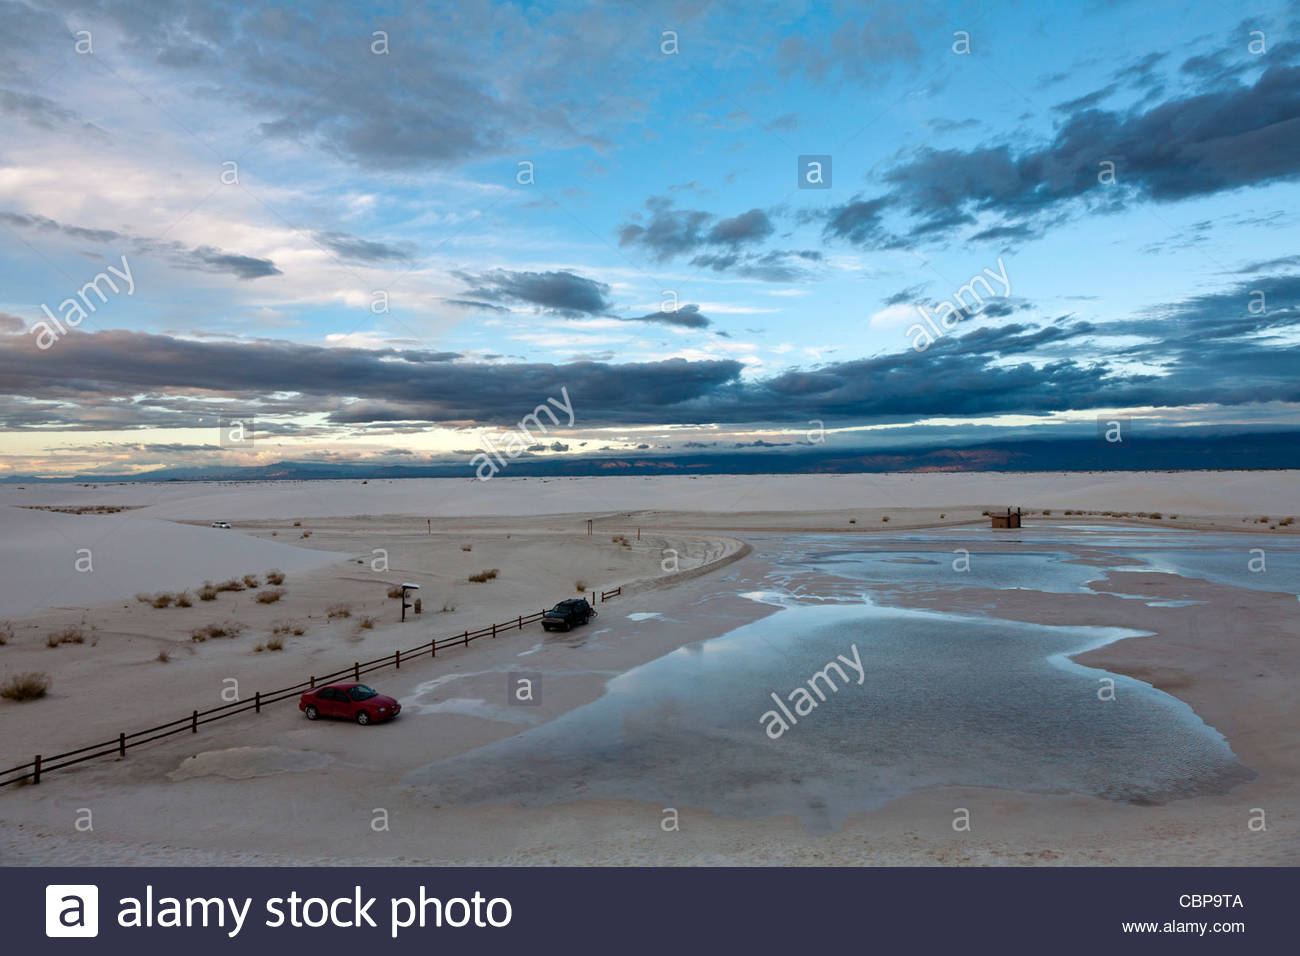 Cloudy skies and wet ground after a rainfall at White Sands National Monument, New Mexico, United States - Stock Image